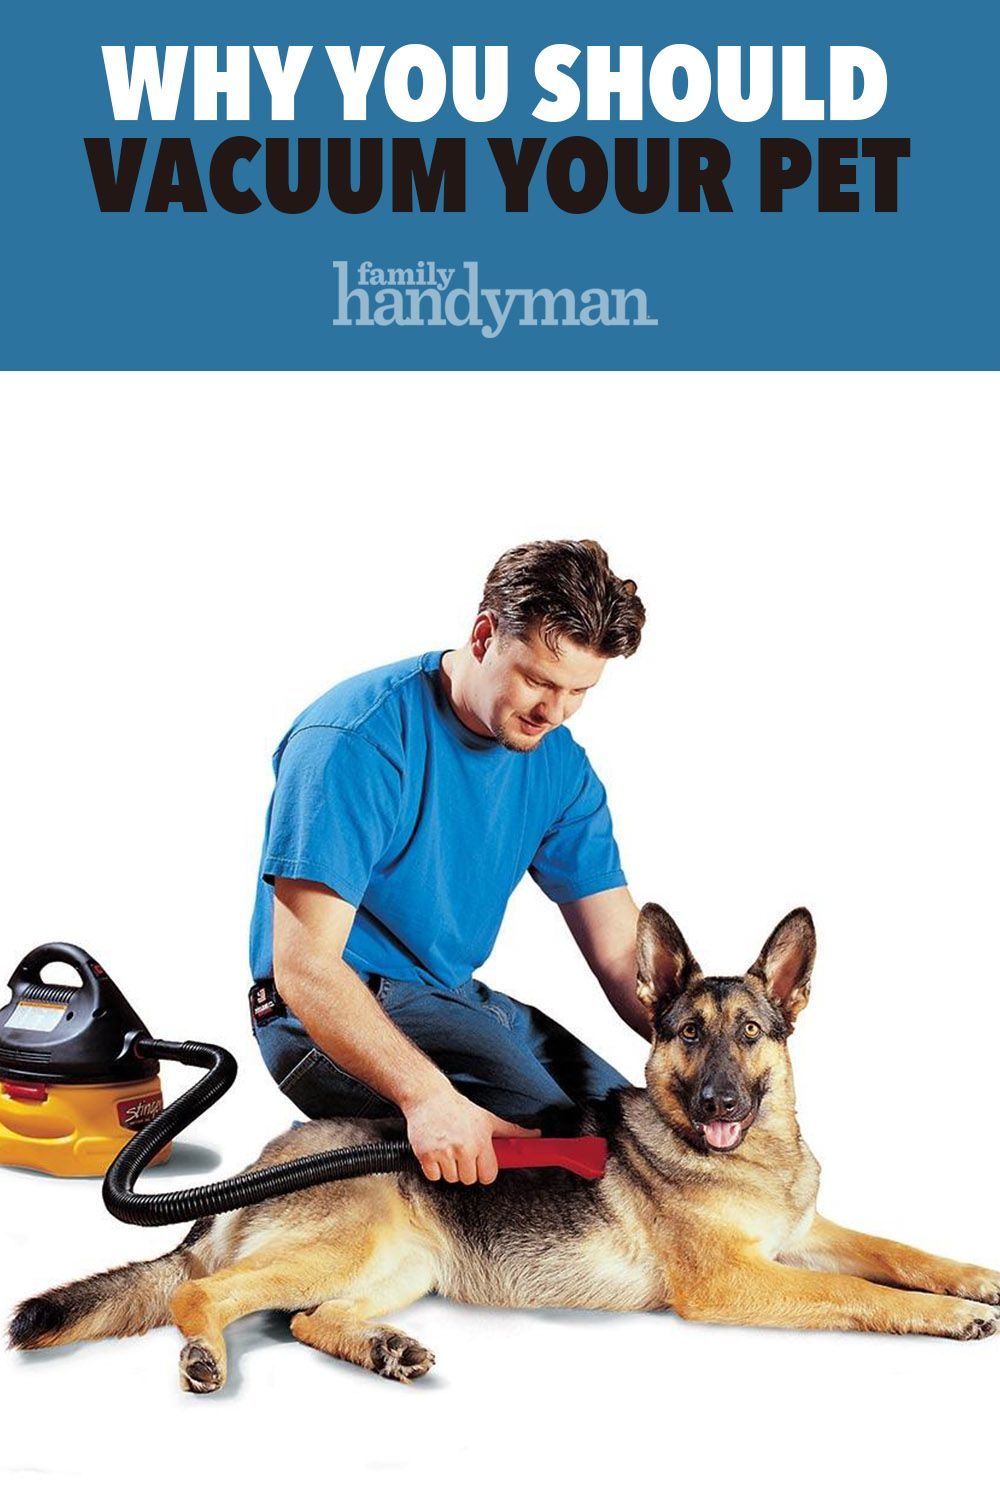 100 Essential Cleaning Hacks For Your Home Cleaning Hacks Pets Your Pet